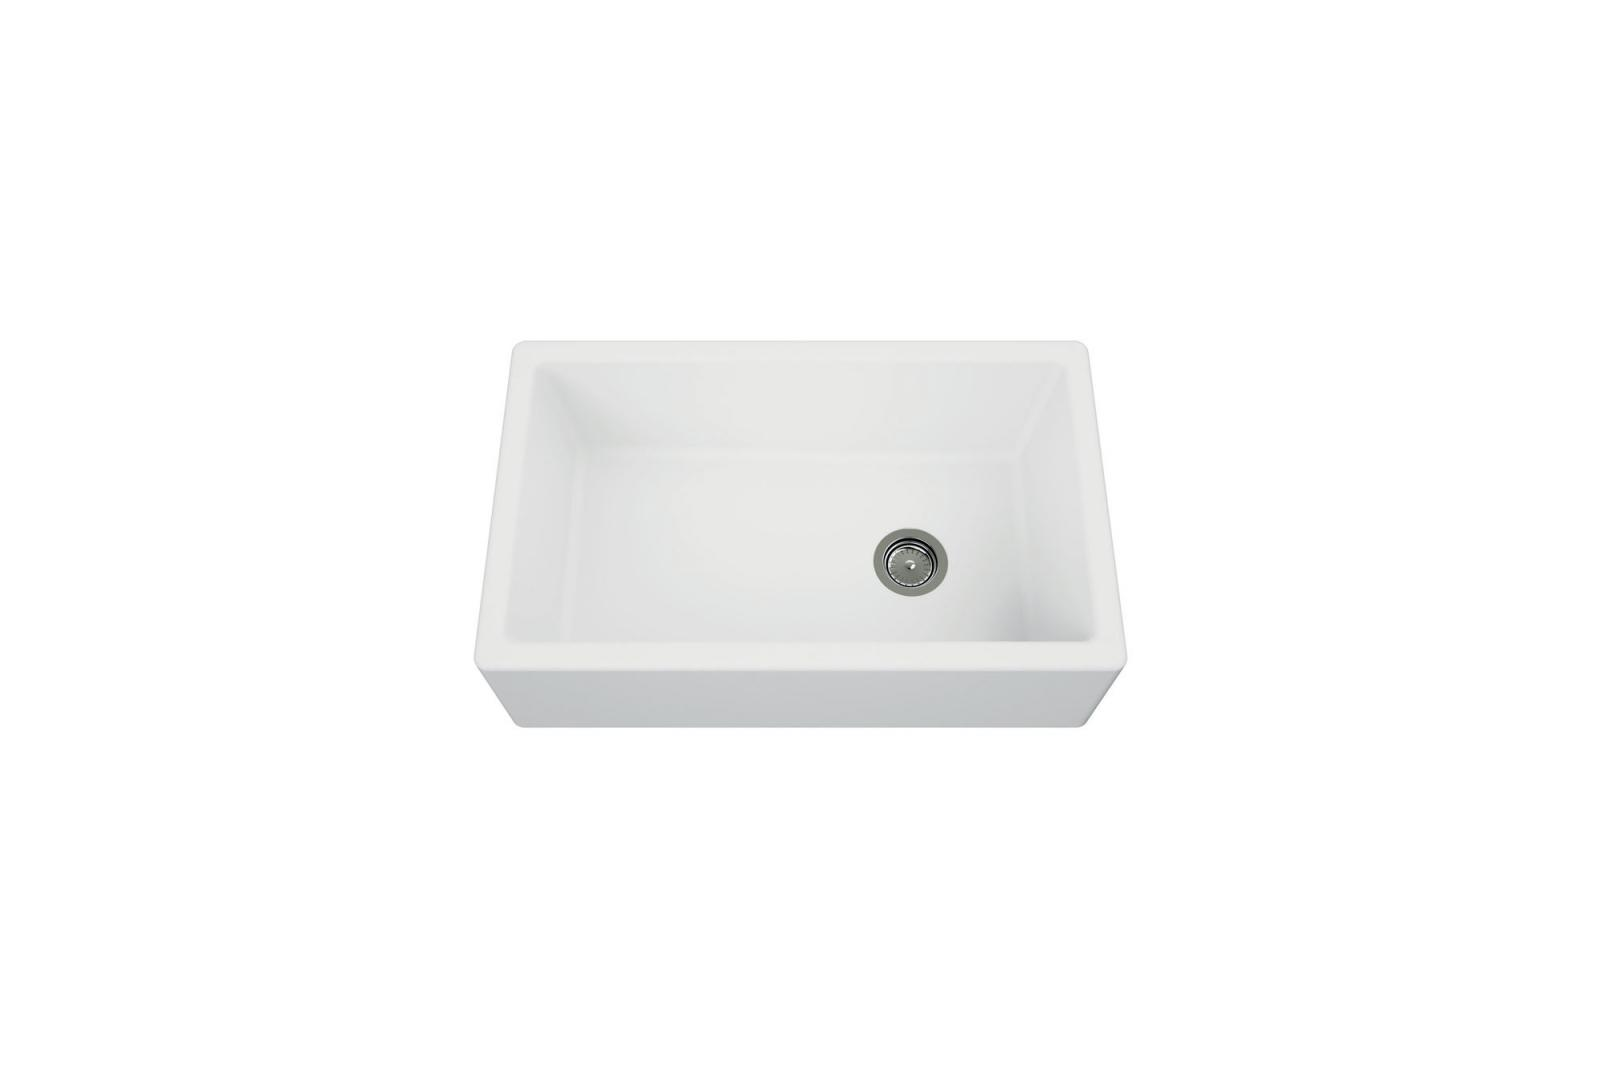 High-quality sink Philippe granit white - one bowl